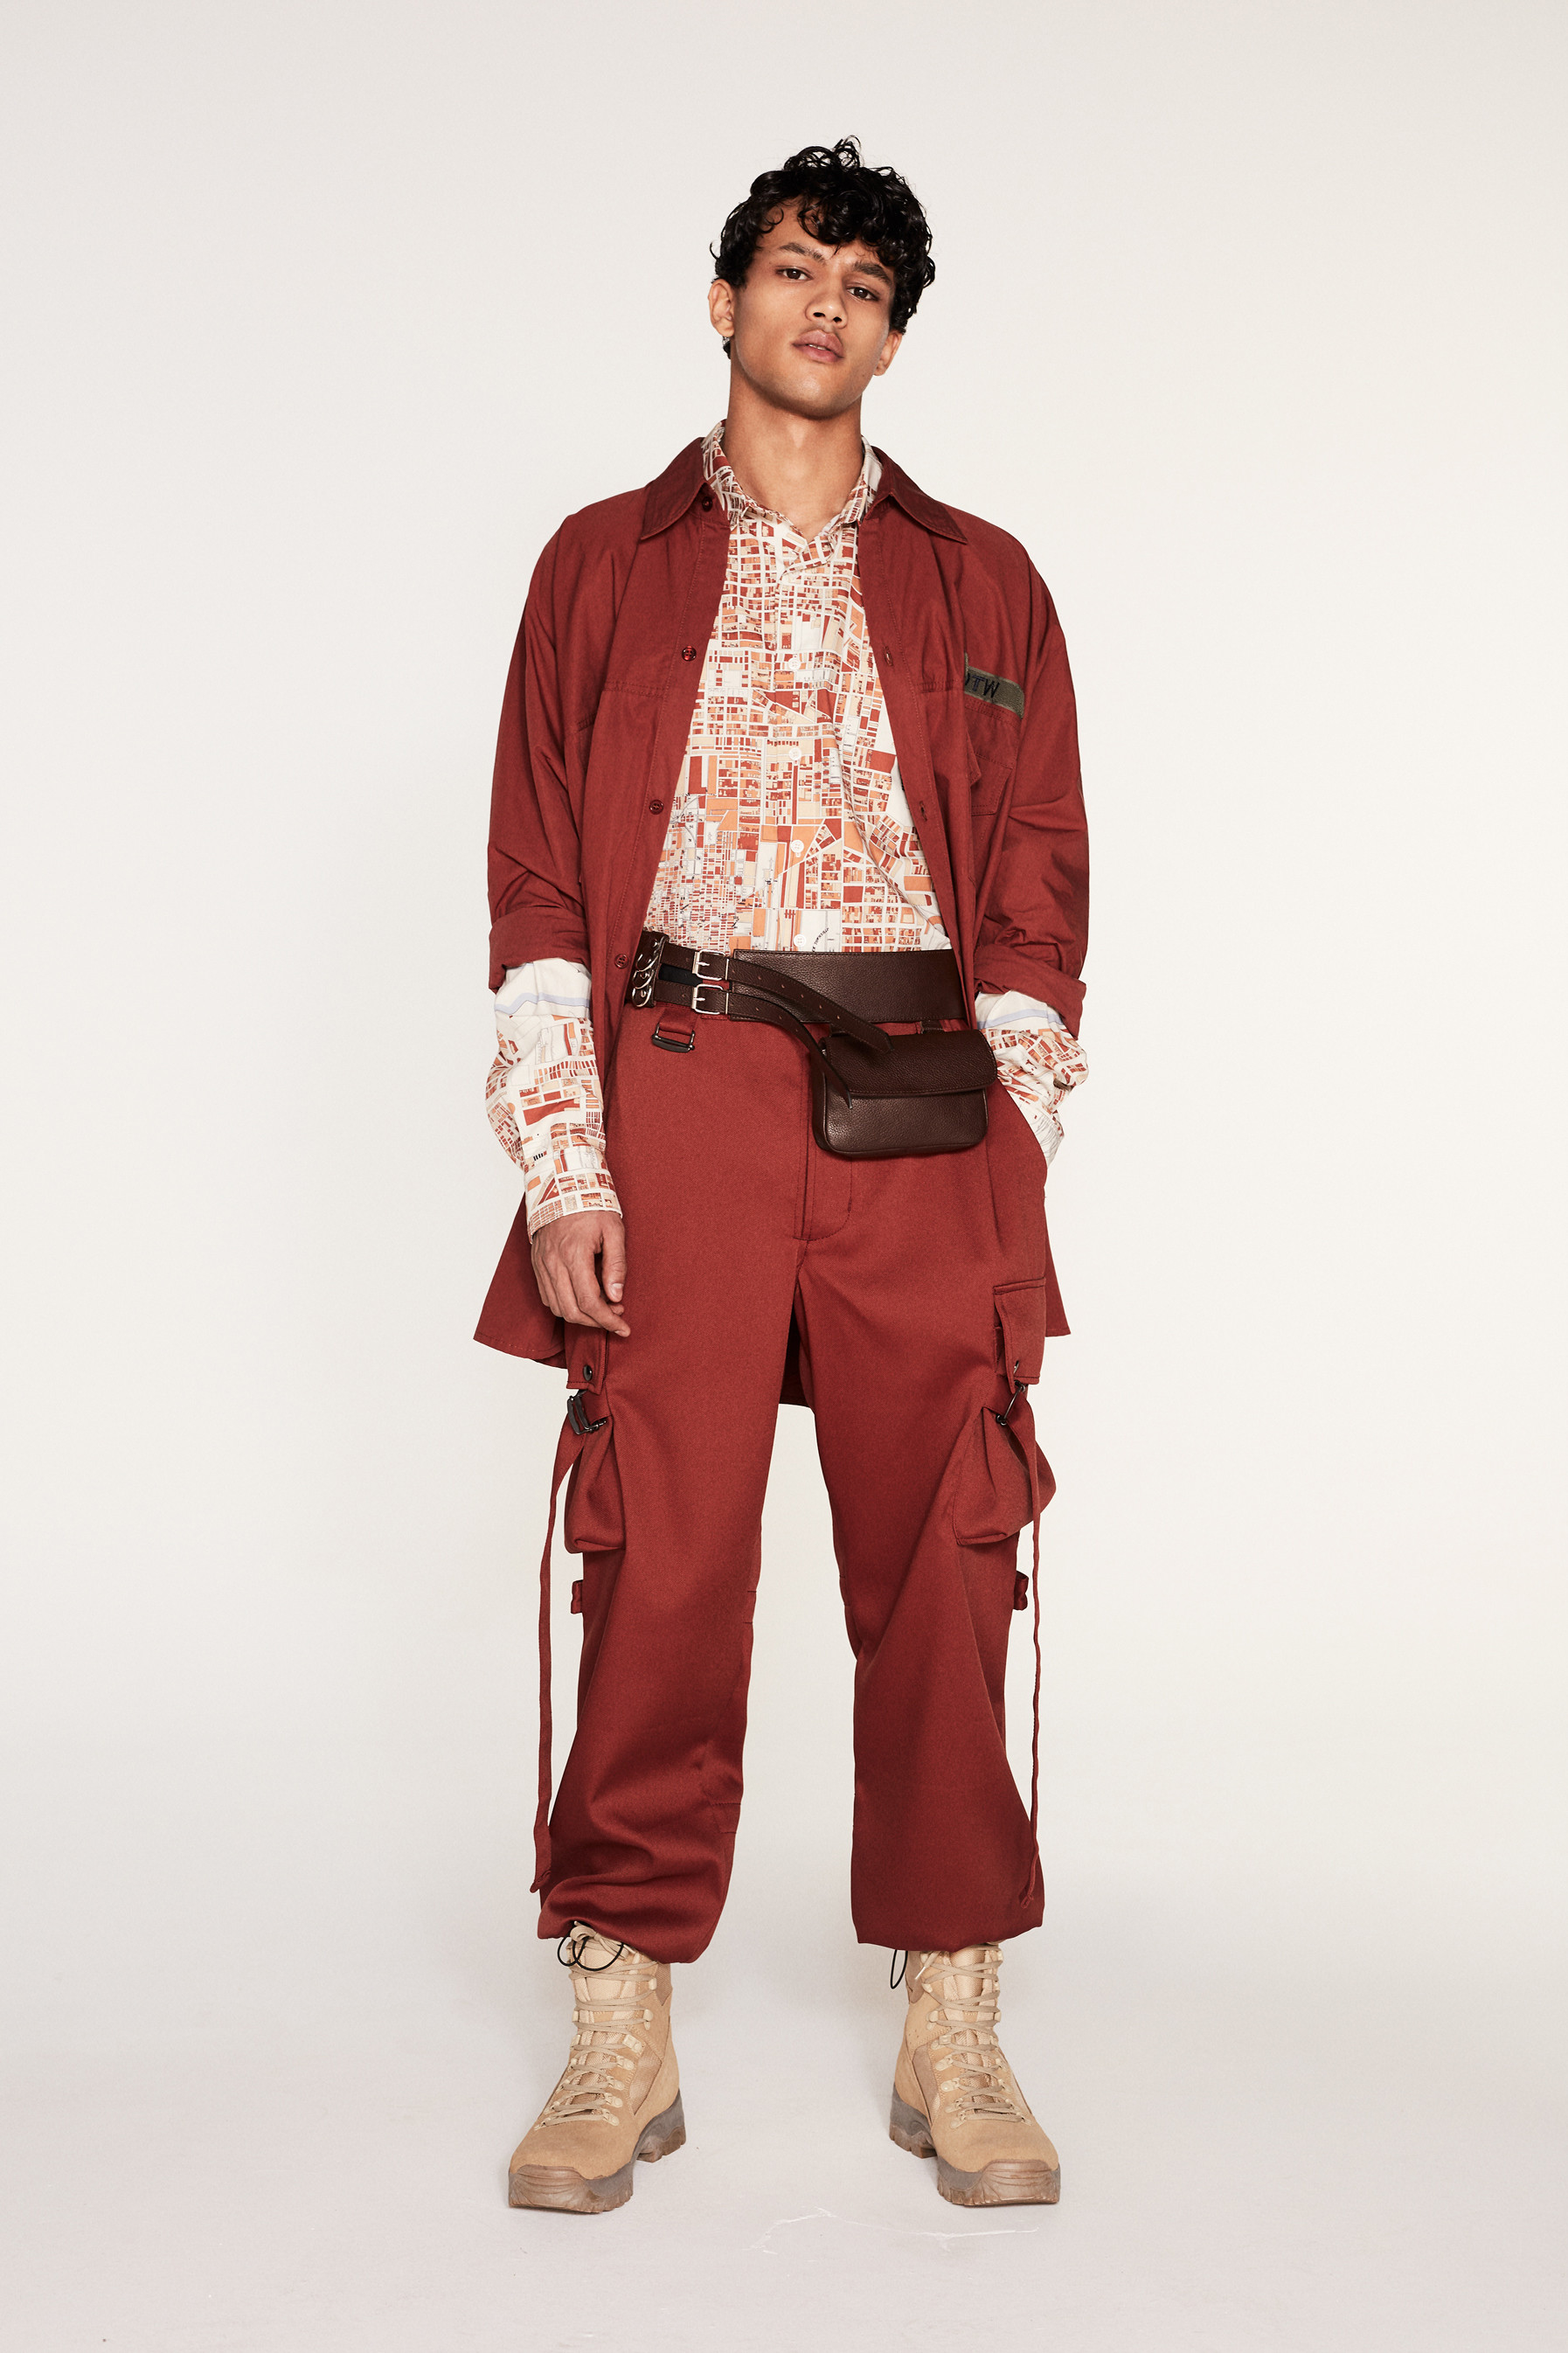 37052c826f837 one-culture-collection-automne-hiver-2019-lookbook-mode-folkr-5 ...